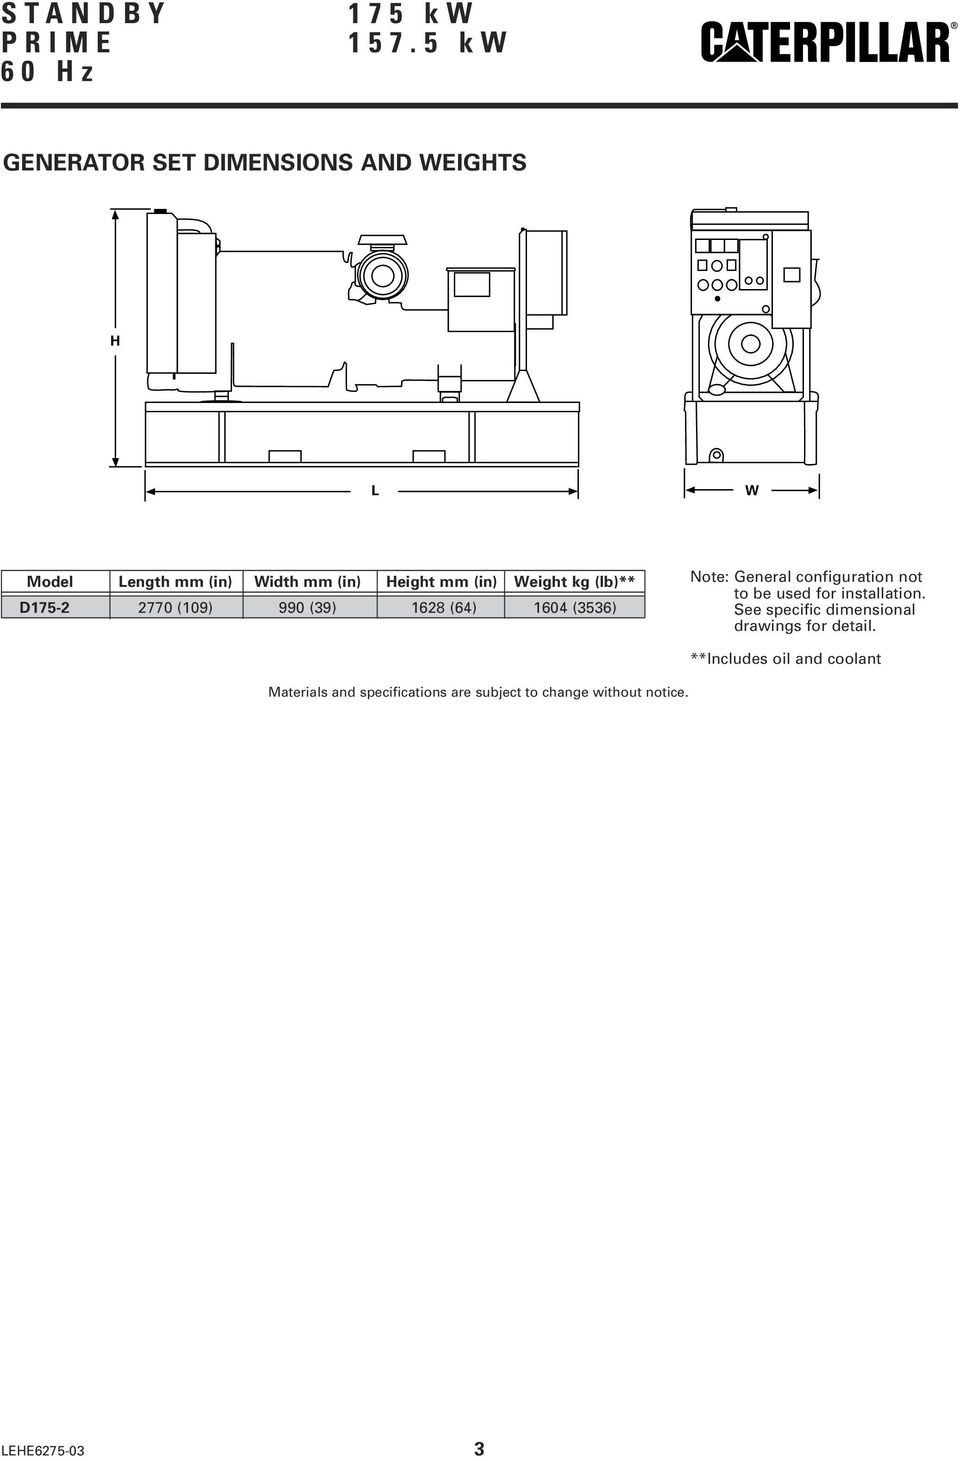 medium resolution of to be used for installation see specific dimensional drawings for detail